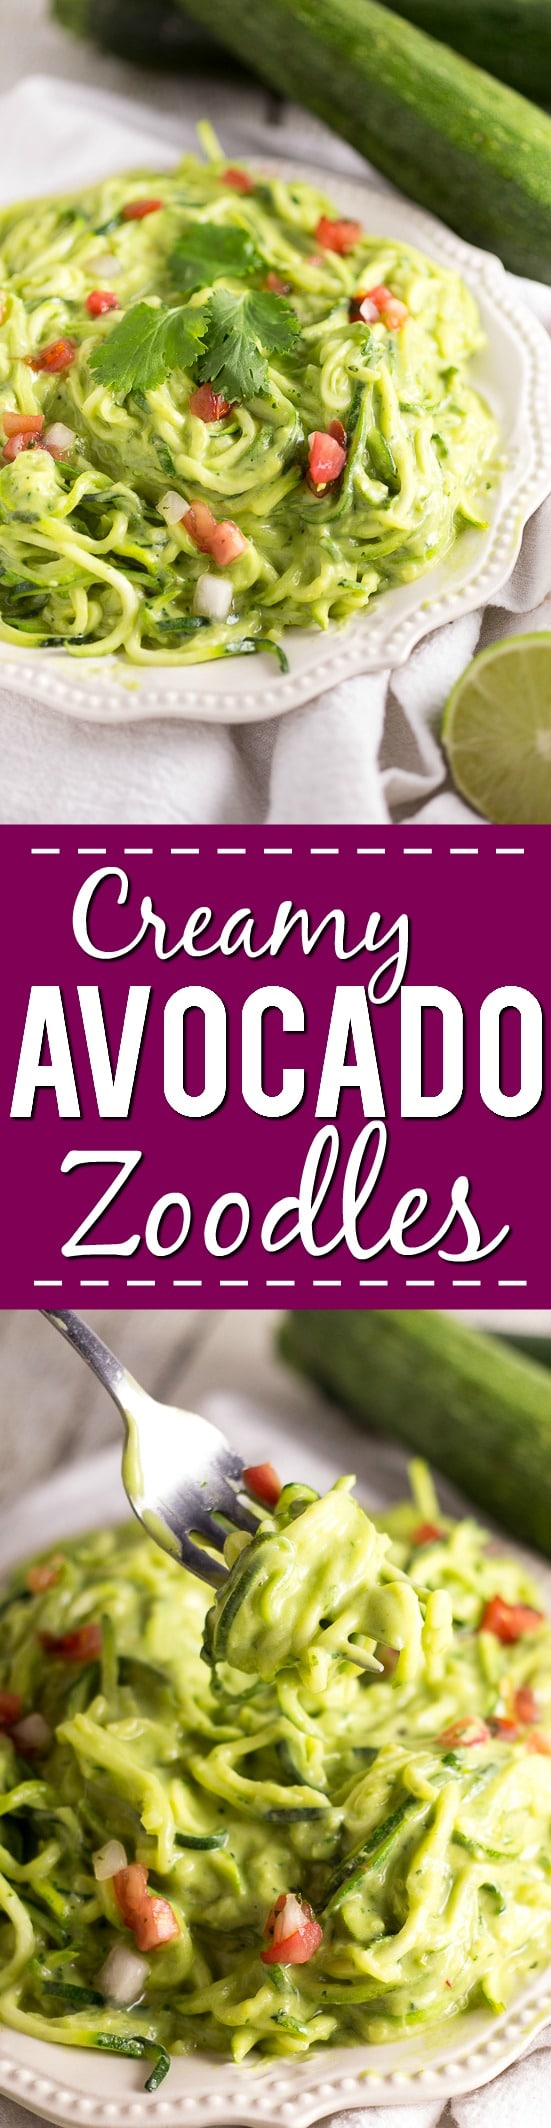 Creamy Avocado Zoodles Recipe -A fresh zucchini noodles recipe that takes less than 20 minutes to make, these Creamy Avocado Zoodles with creamy, fresh and a little zesty sauce are perfect for a simple Summer meal!